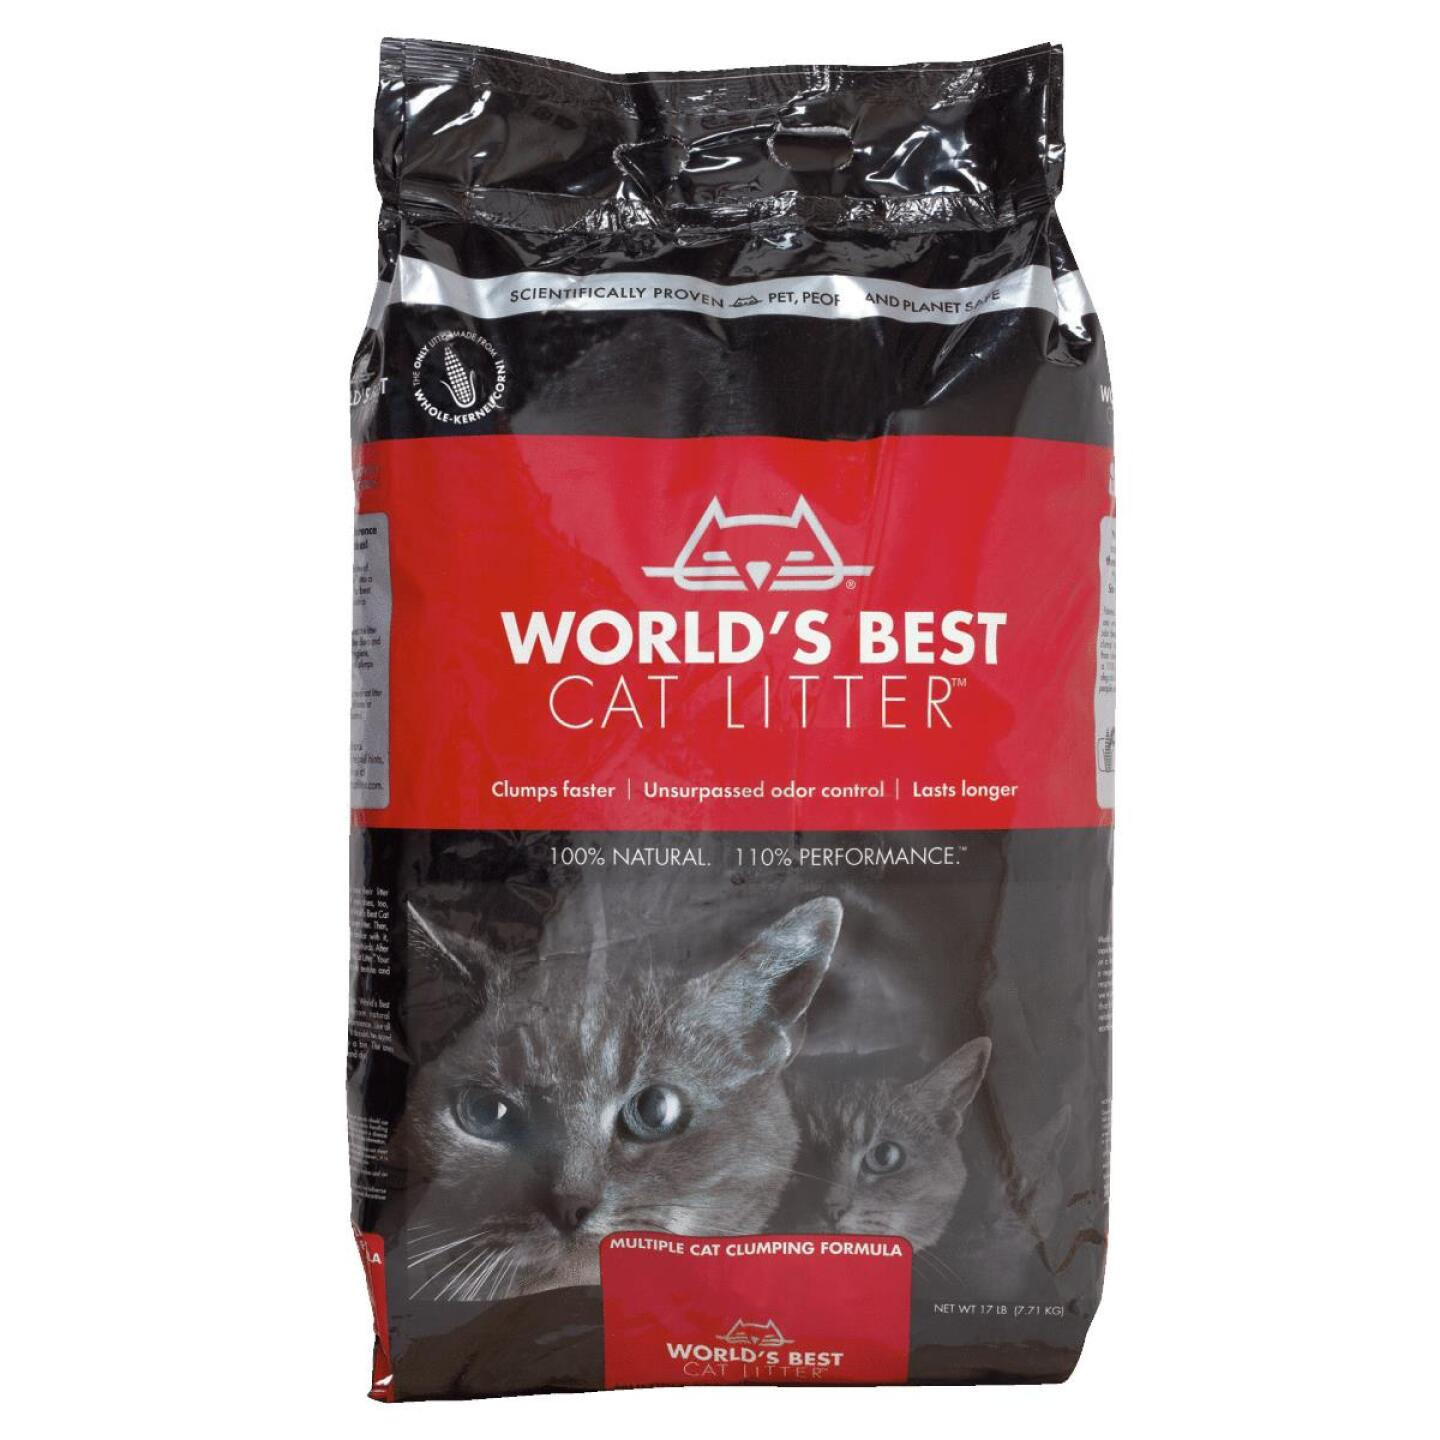 Kent World's Best Cat Litter 17 Lb. Organic Cat Litter Image 1